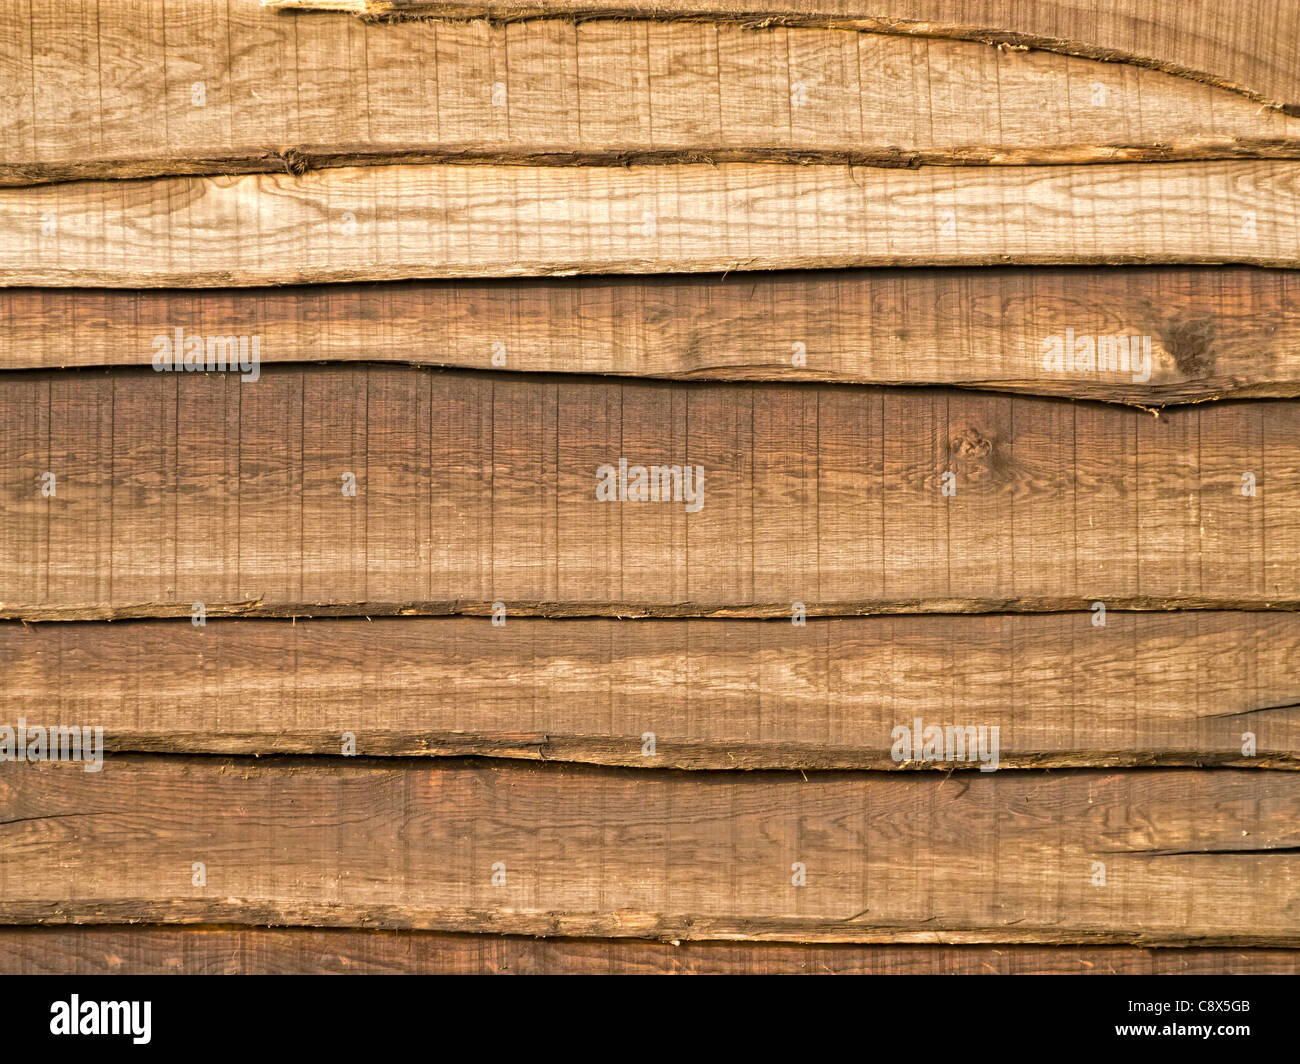 Grungy Wood Texture - Stock Image